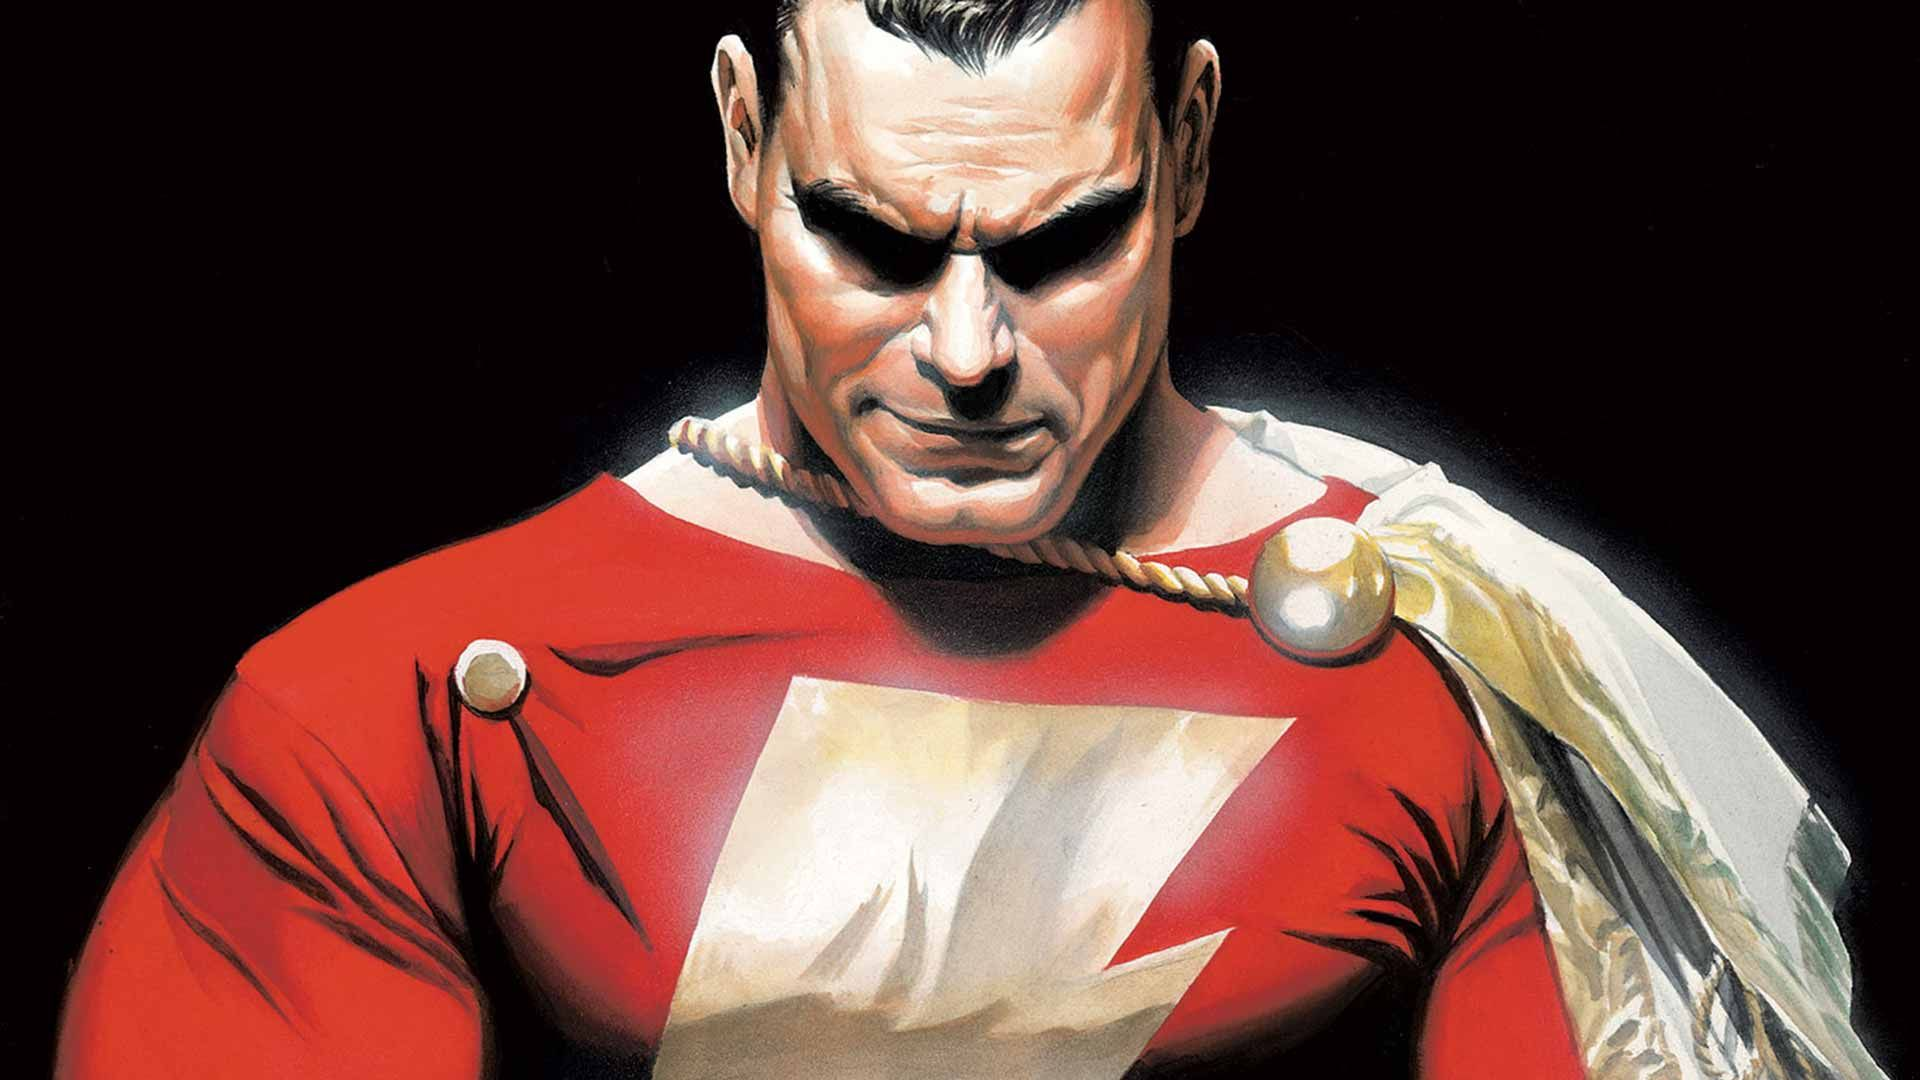 Shazam! is coming